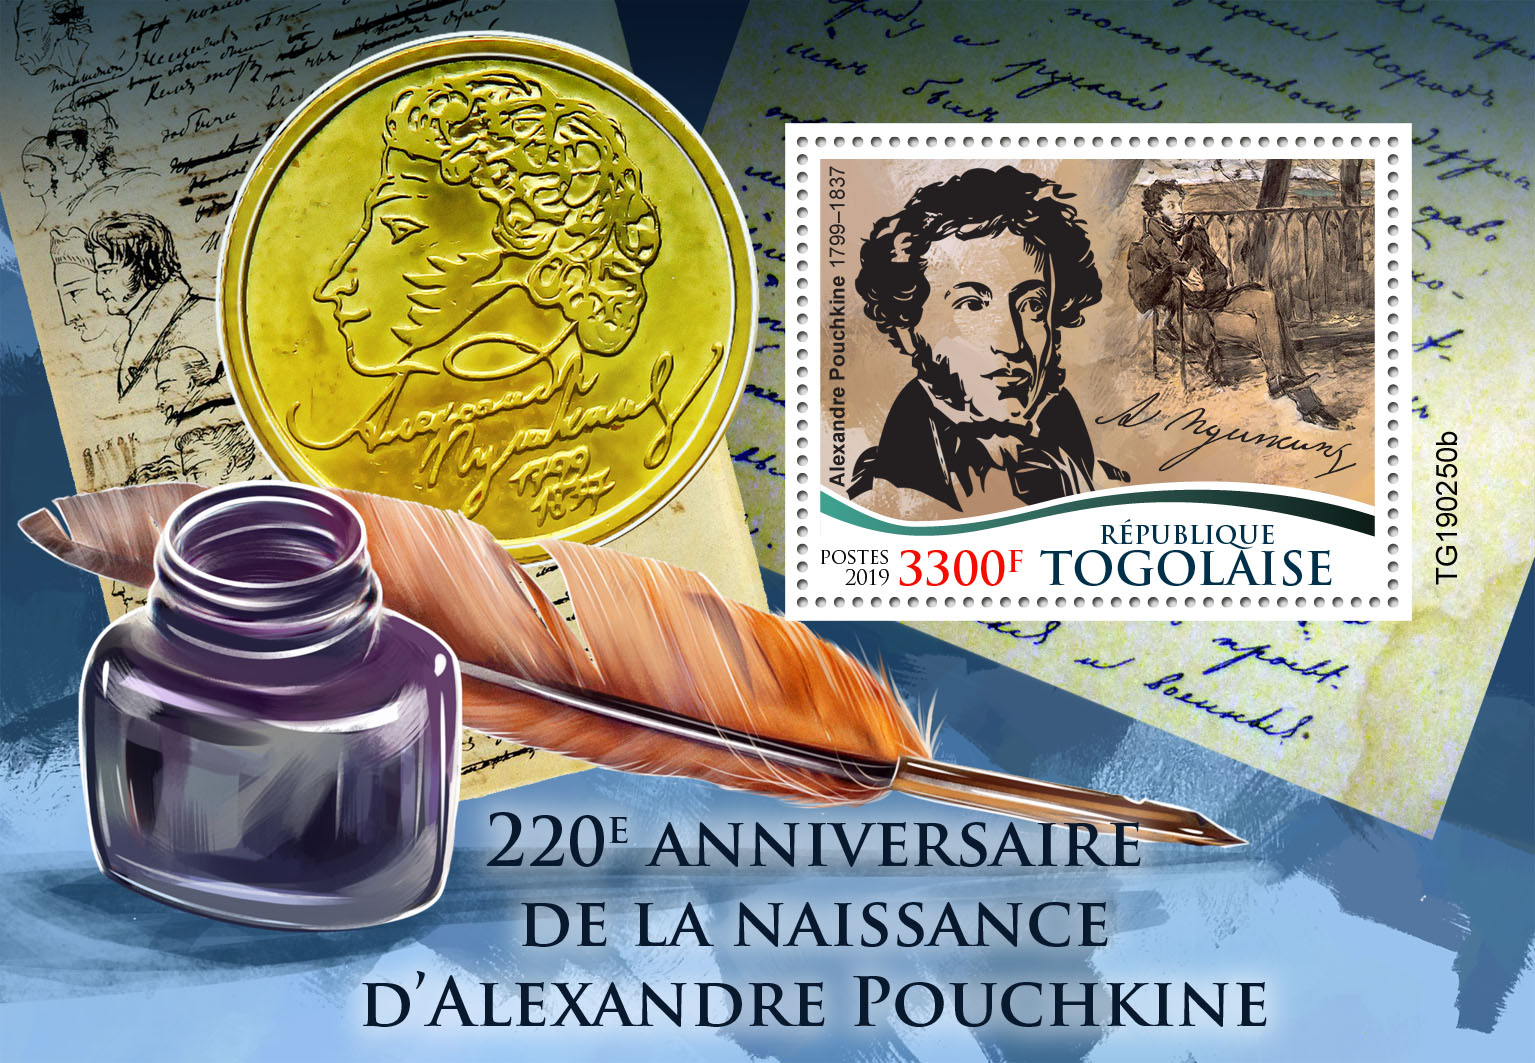 Alexander Pushkin - Issue of Togo postage stamps